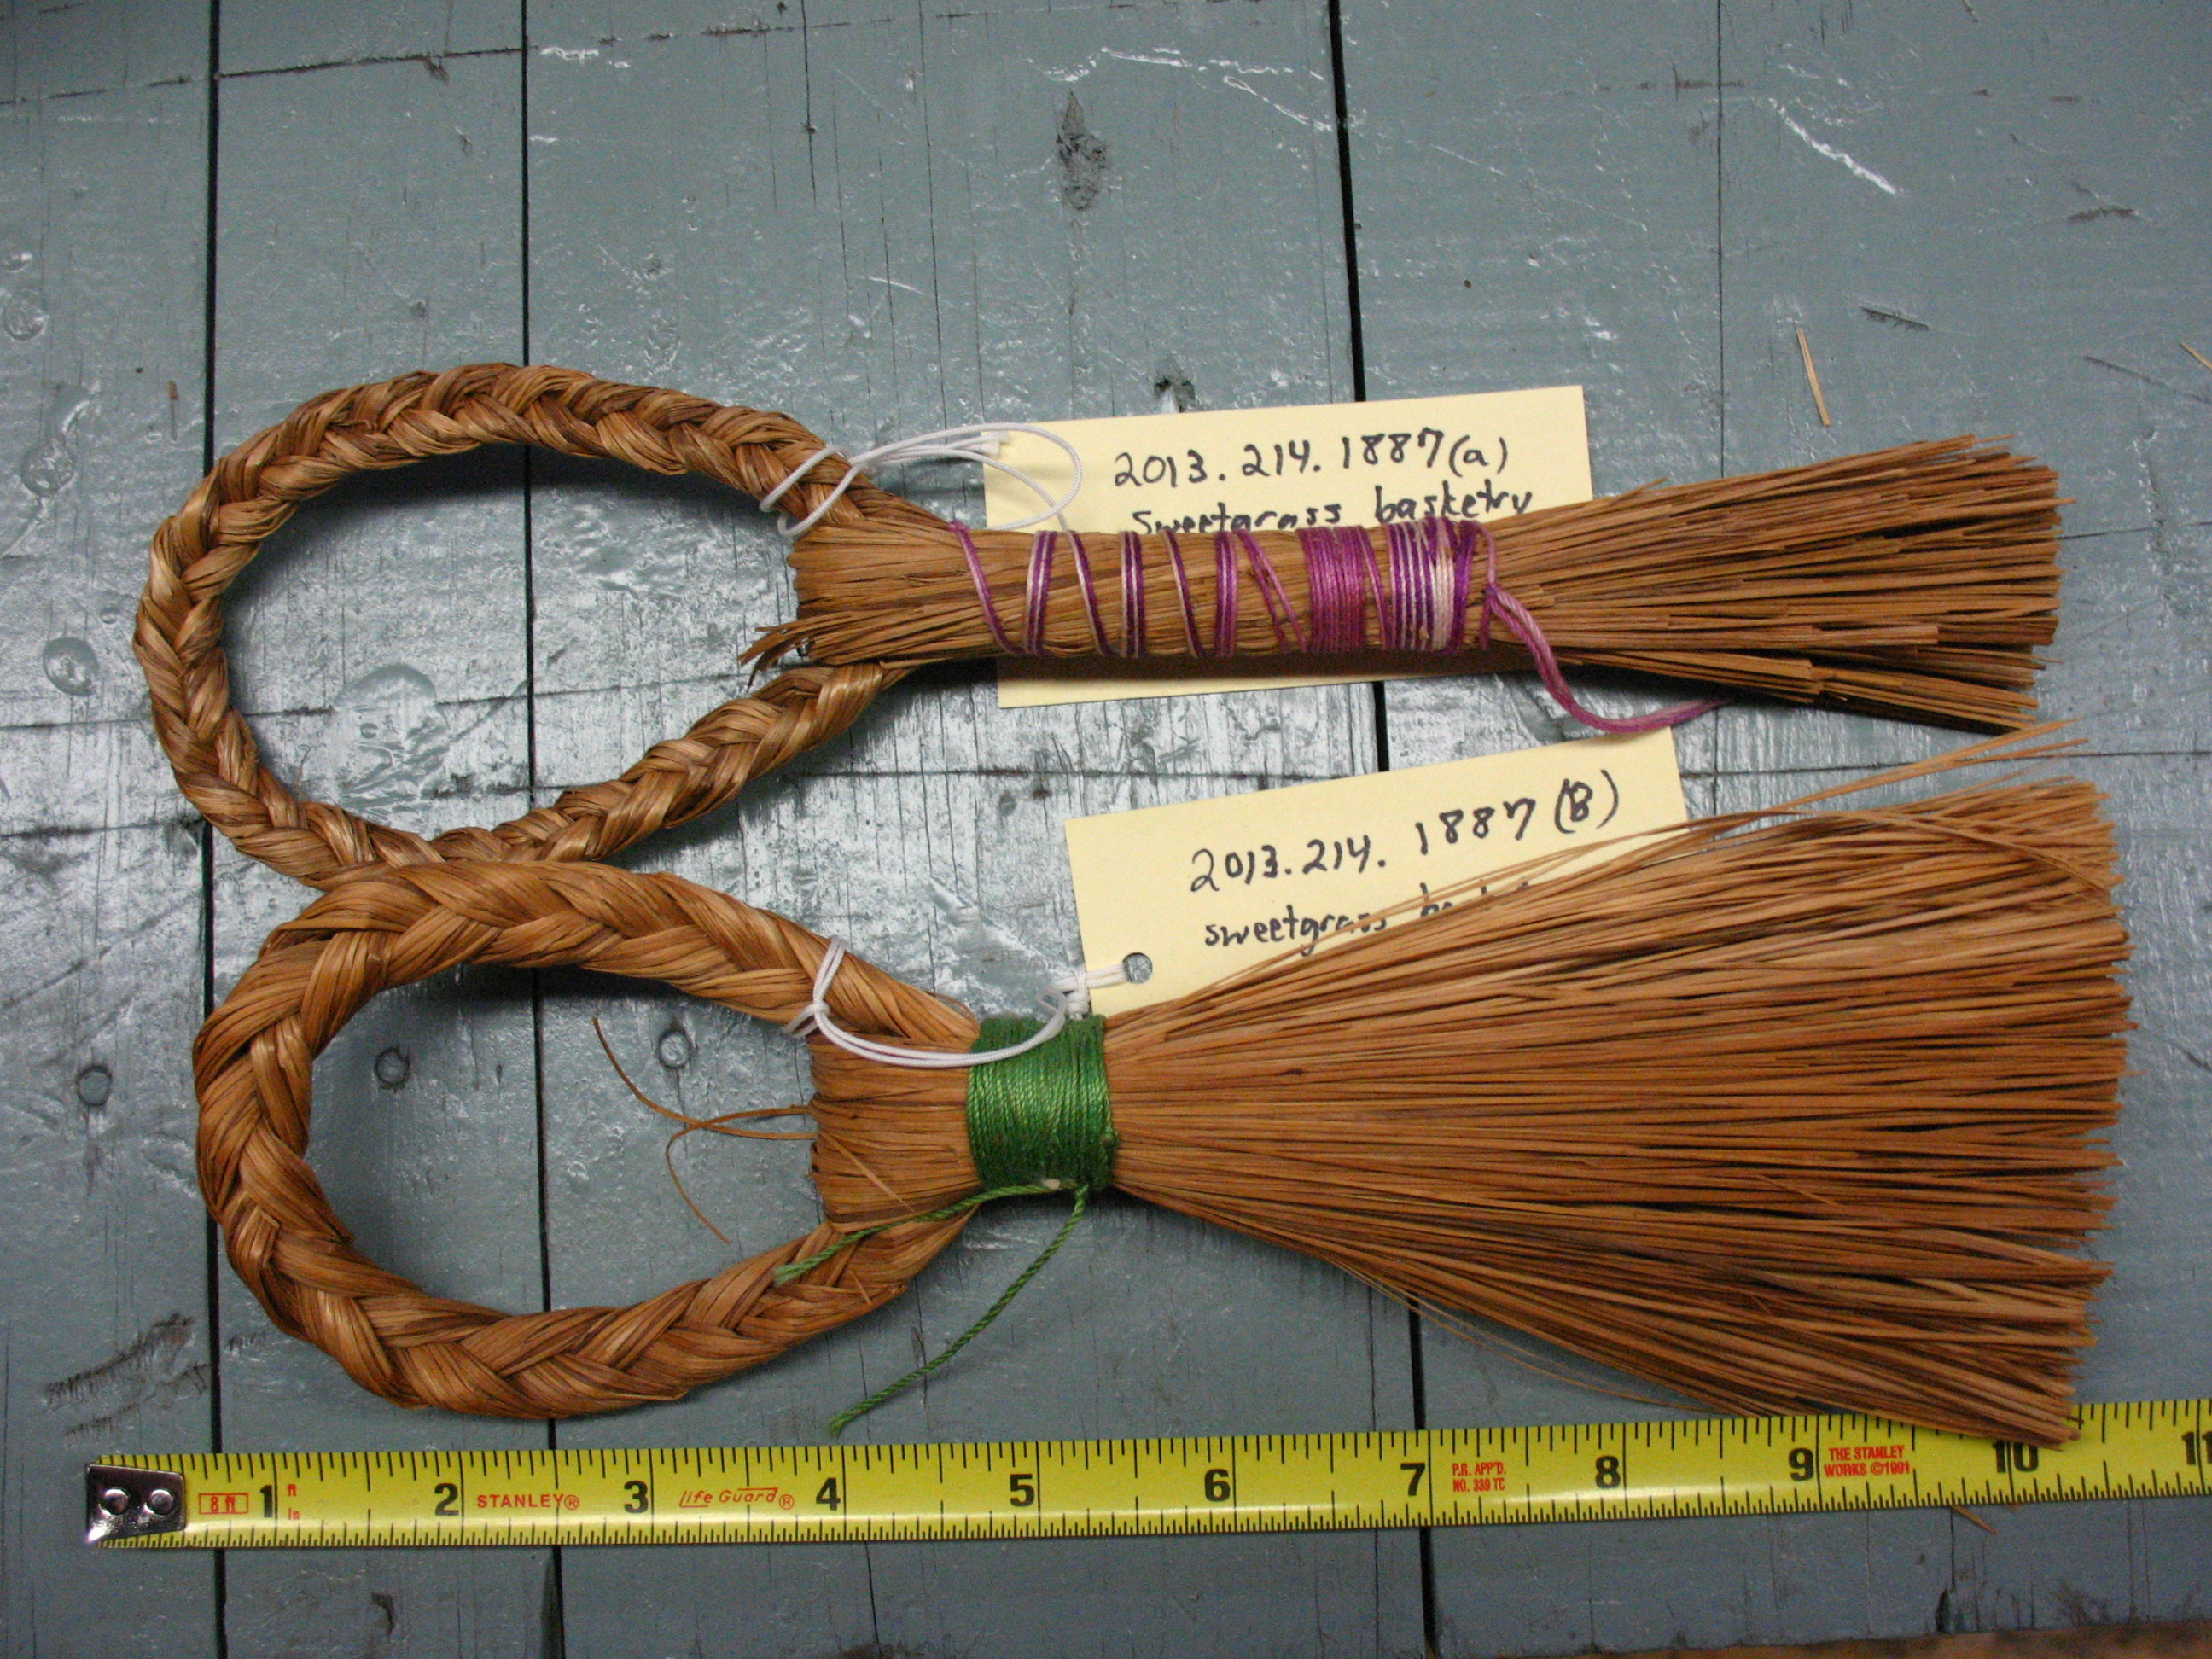 Native American sweetgrass whisk brooms